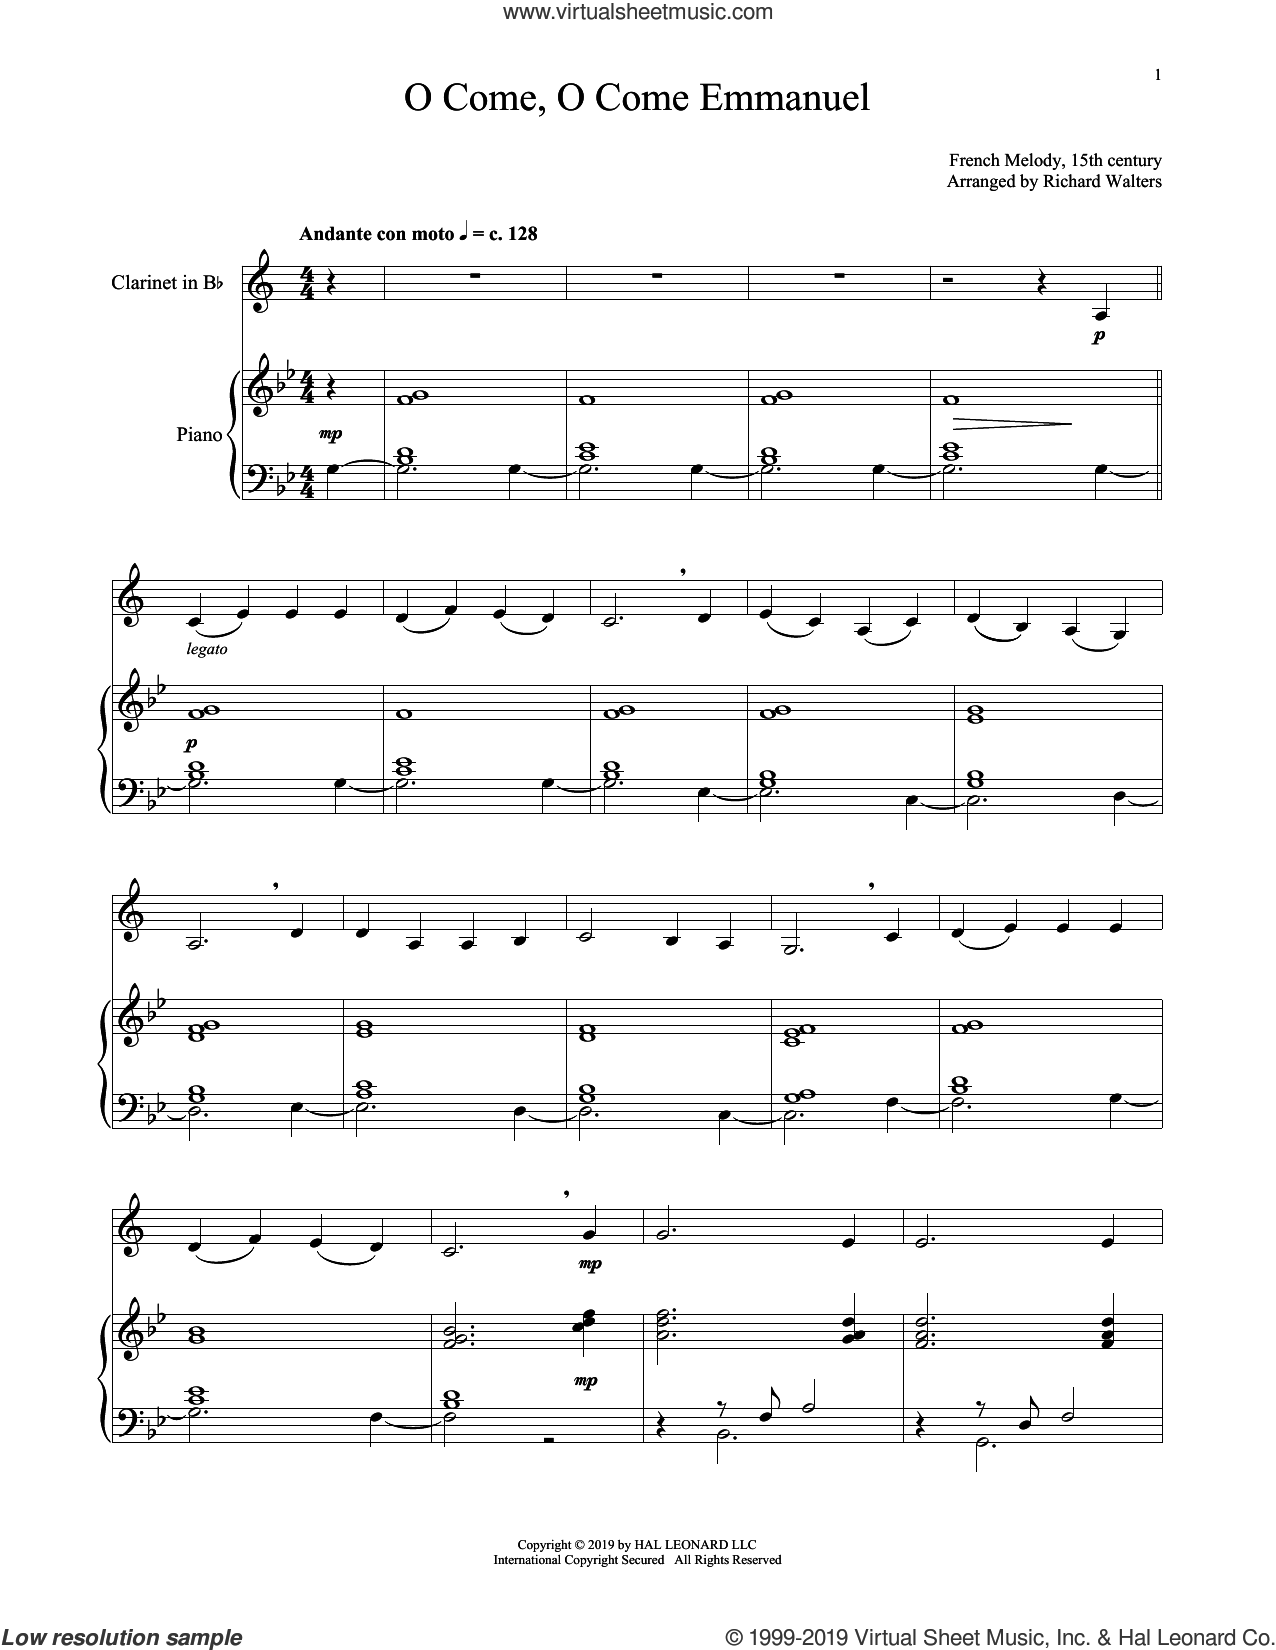 O Come, O Come, Emmanuel sheet music for clarinet and piano by John M. Neale (v. 1,2), 15th Century French Melody, Henry S. Coffin (v. 3,4), Miscellaneous and Thomas Helmore, intermediate skill level